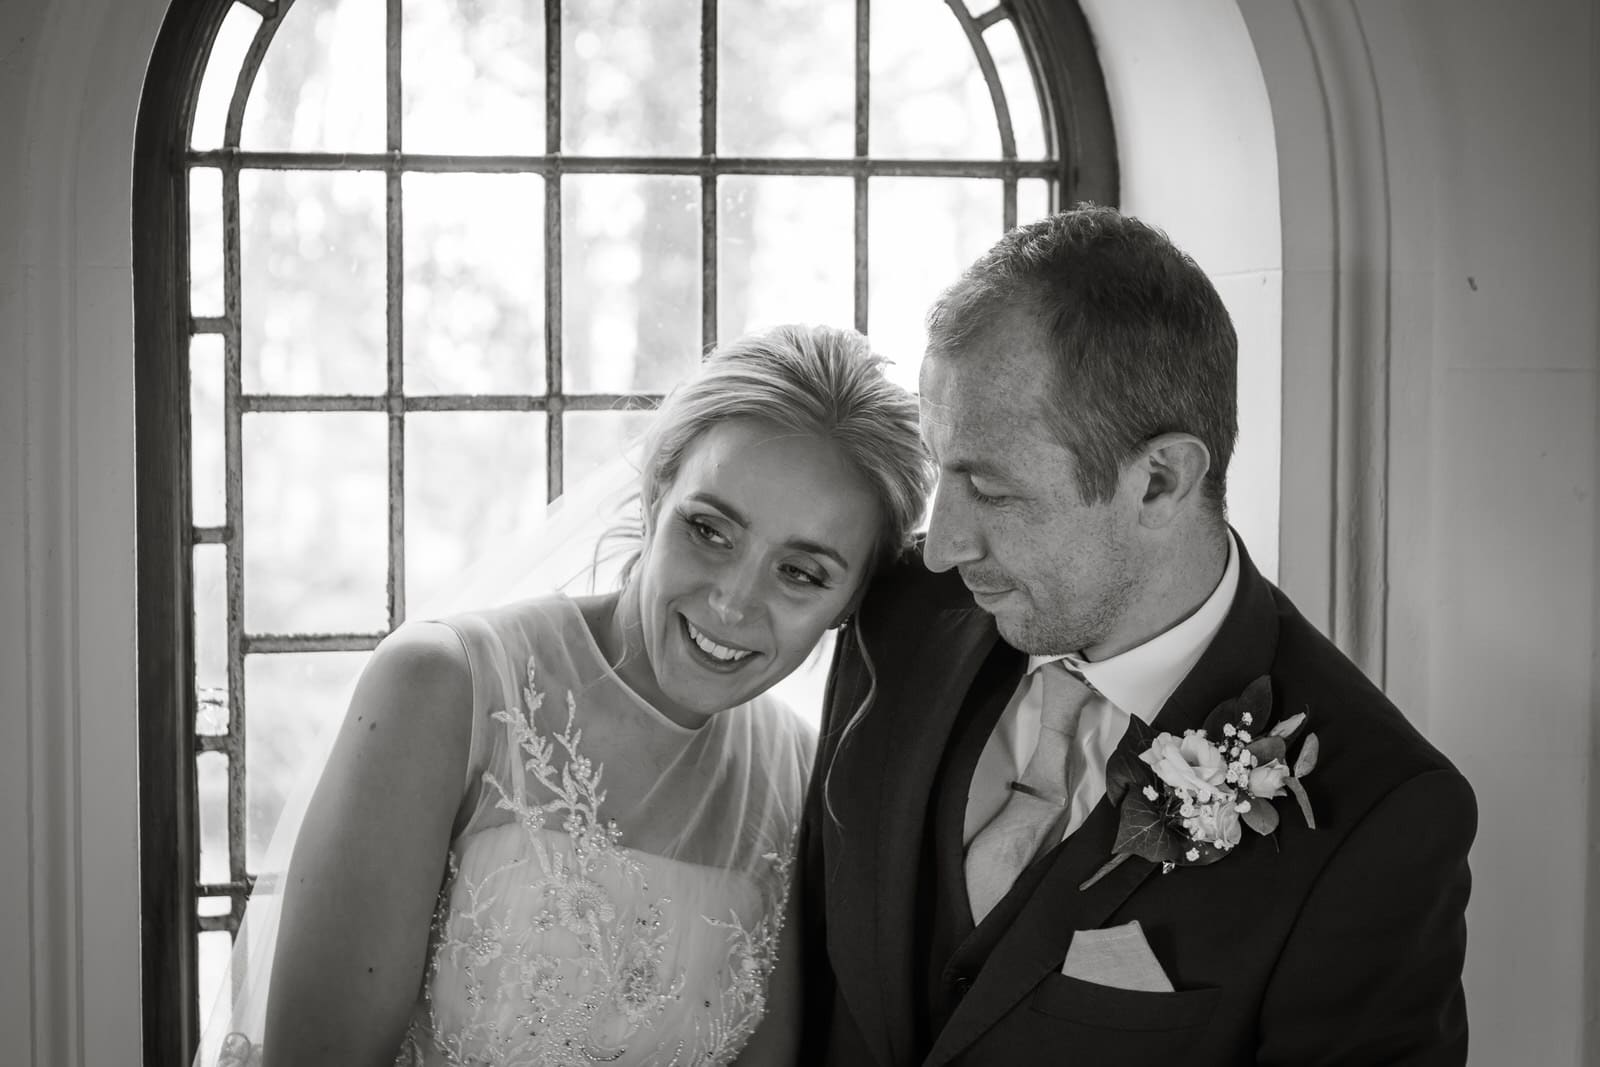 Cumbrian Wedding Photographer Keltic Rose Photography Wedding Photo at Blaithwaite House